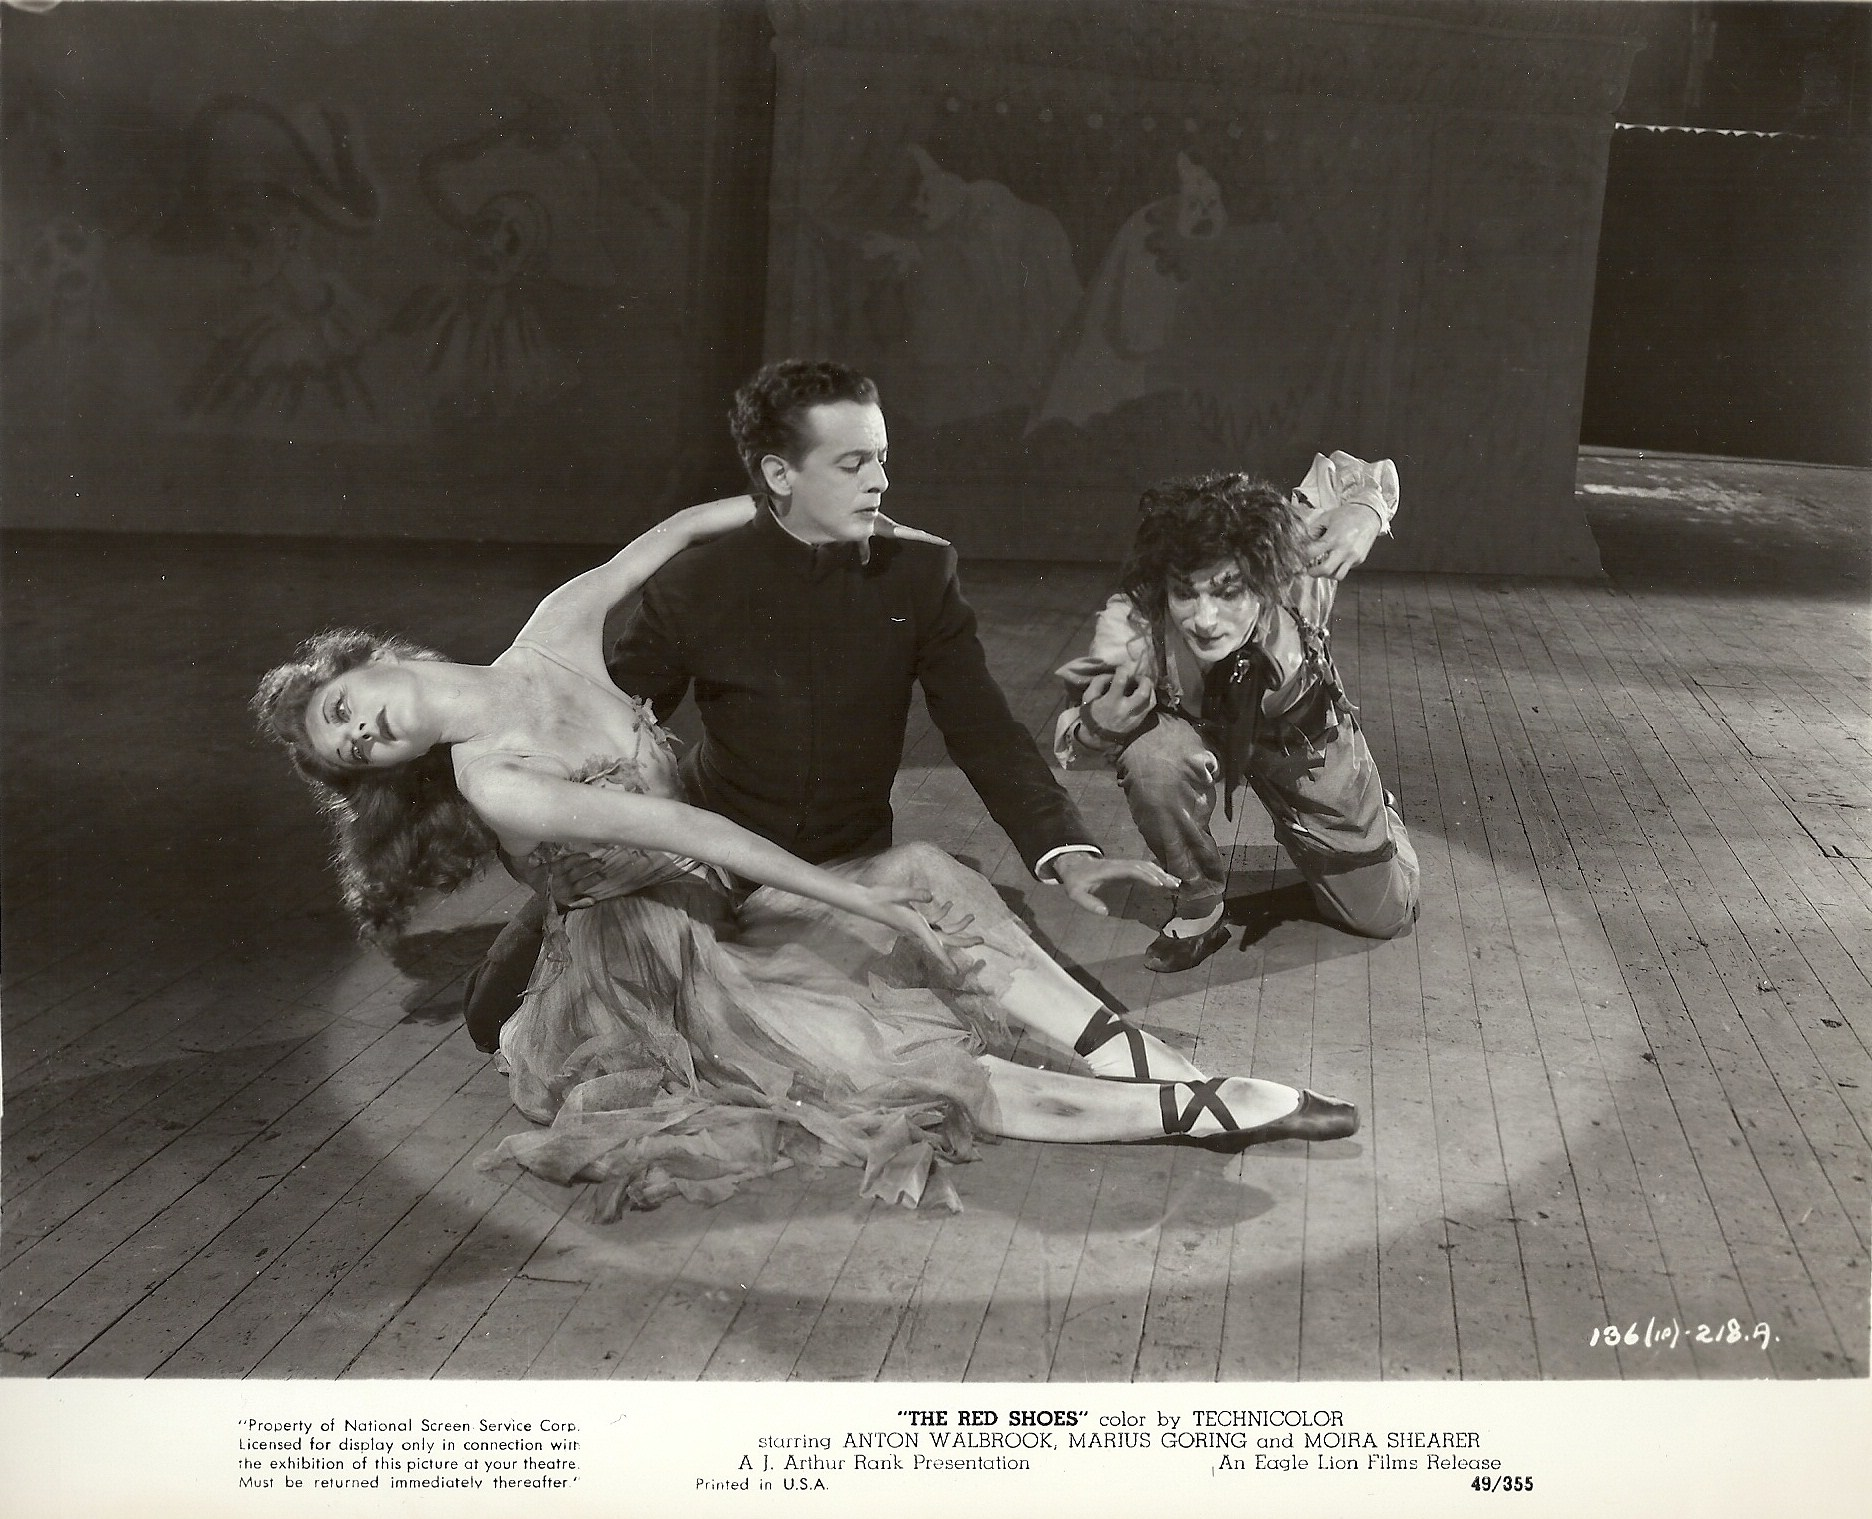 Original_publicity_still_for_the_film__The_Red_Shoes.__From_The_Red_Shoes_(1948)_Collection_at_Ailina_Dance_Archives